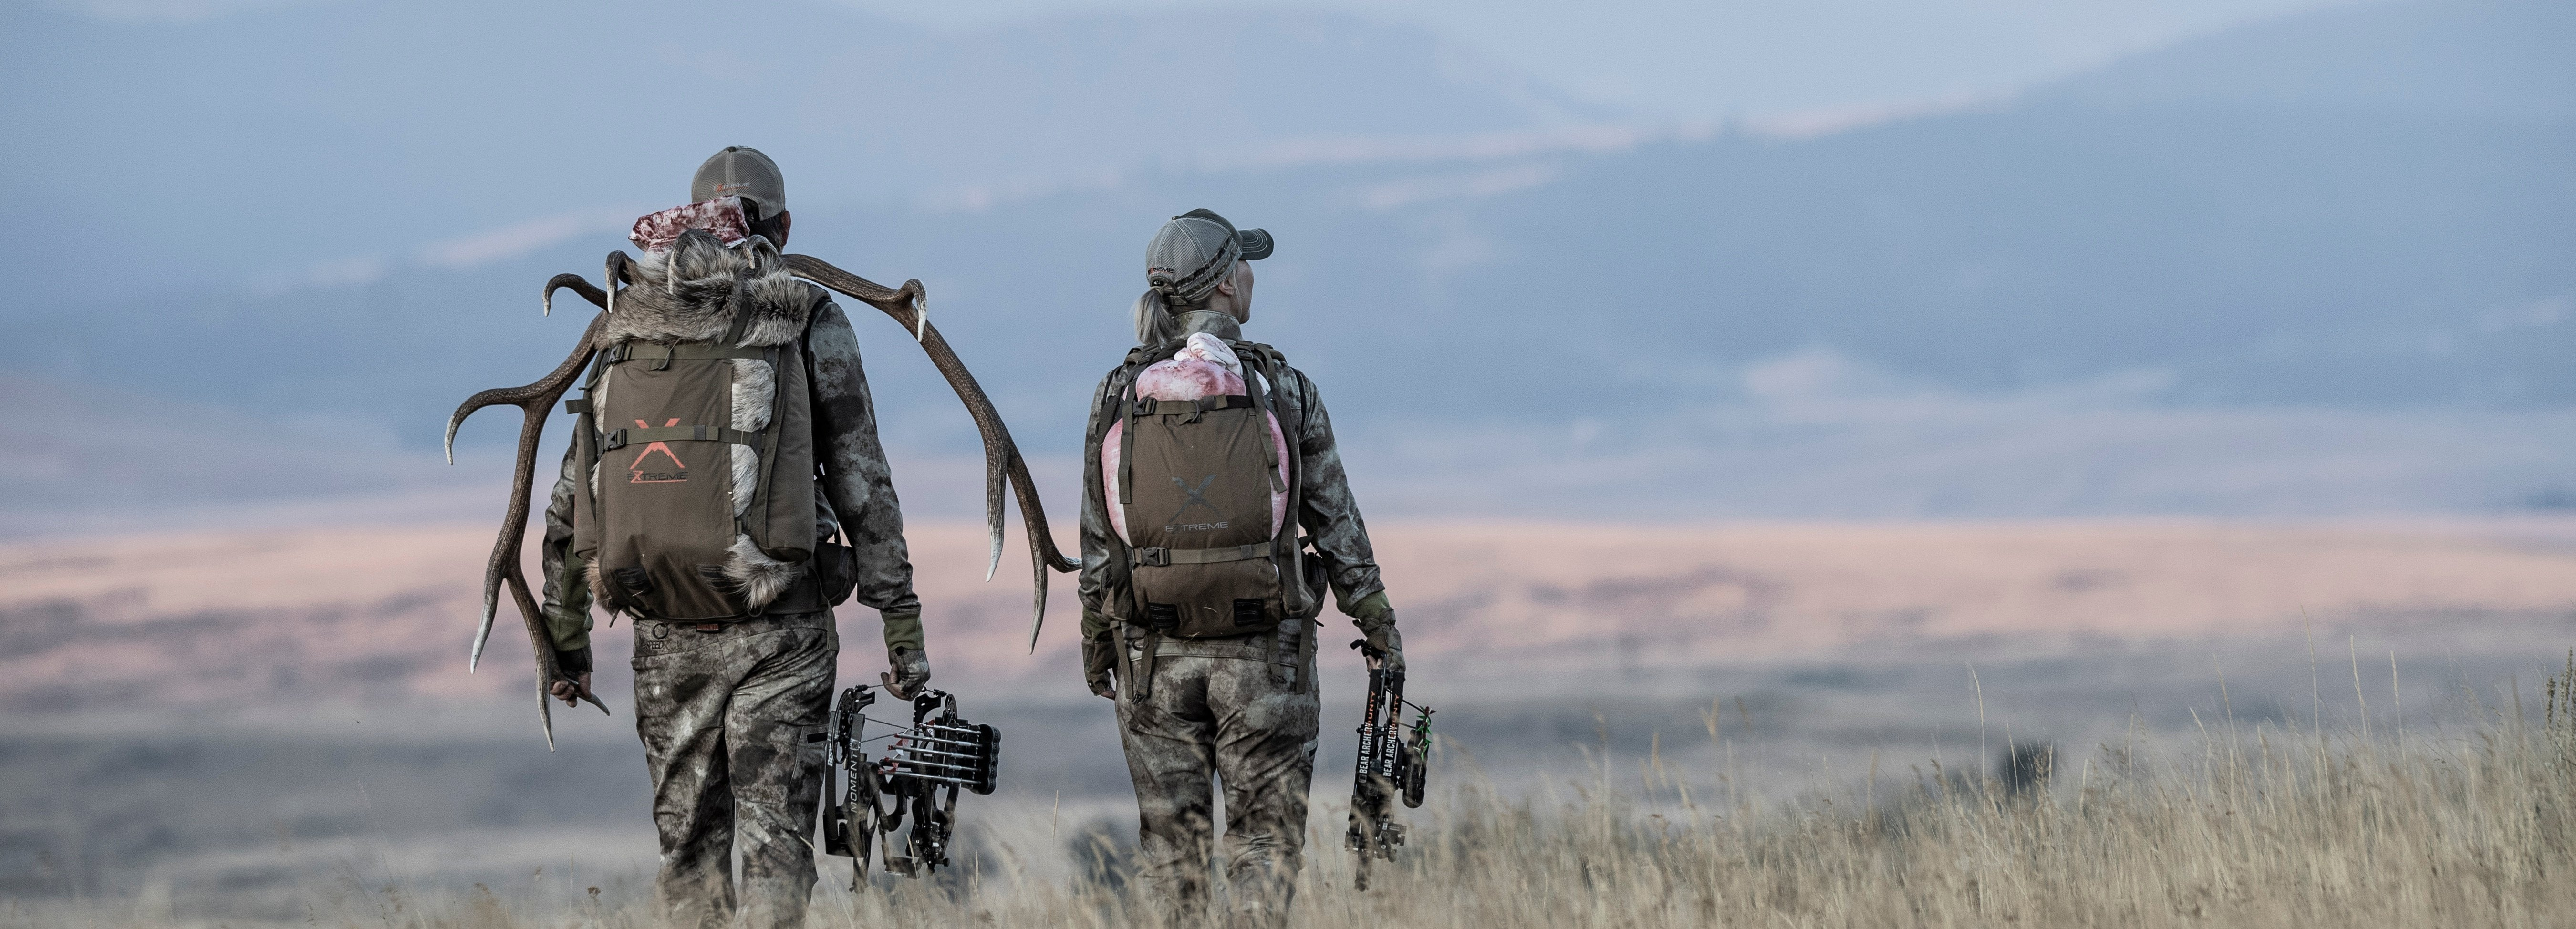 Hunting Gear Brands and Best Hunting Packs with ALPS OutdoorZ